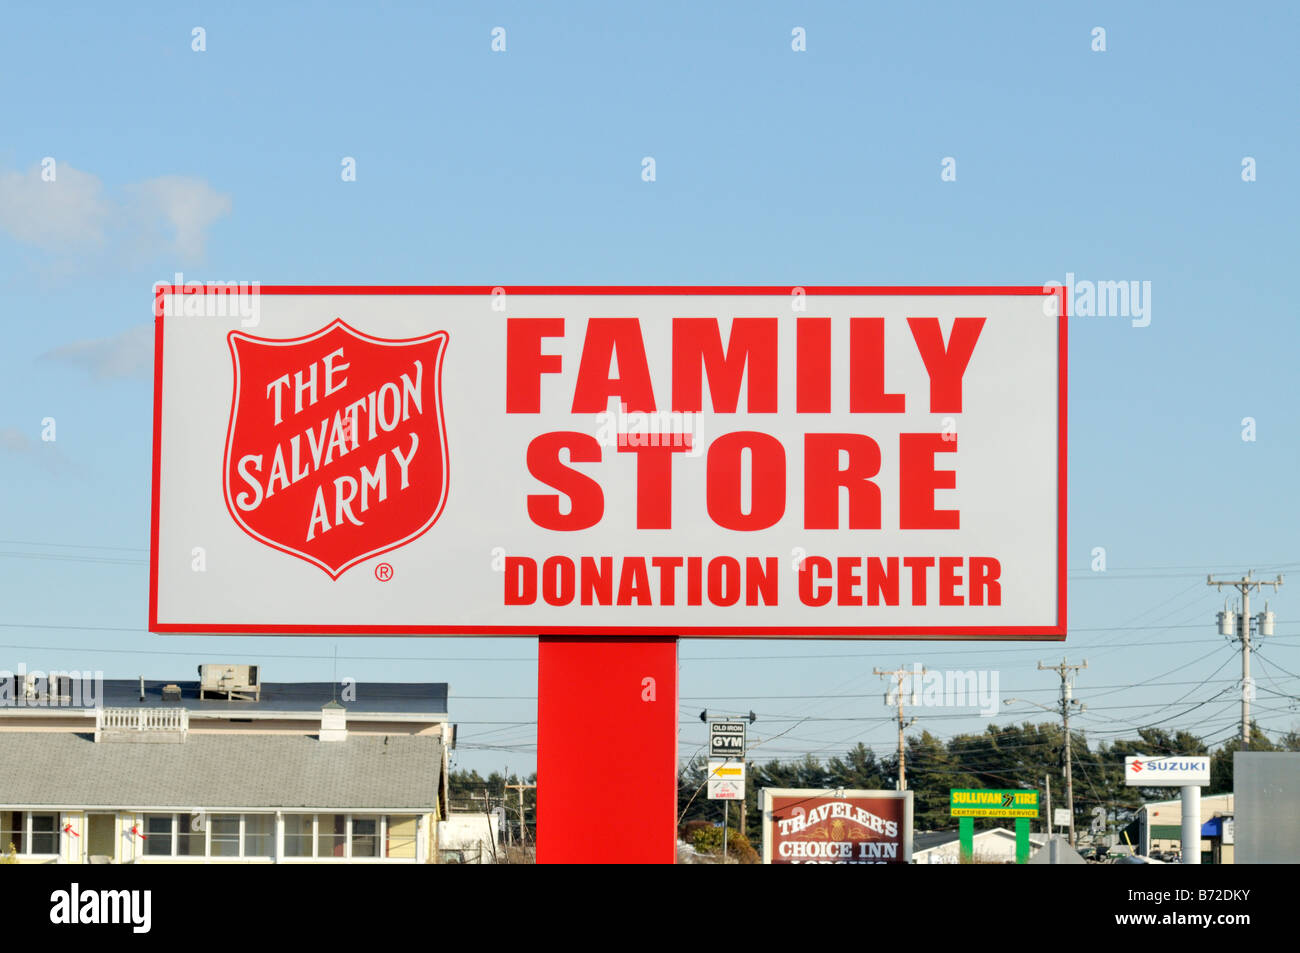 Sign for The Salvation Army family store and donation center - Stock Image